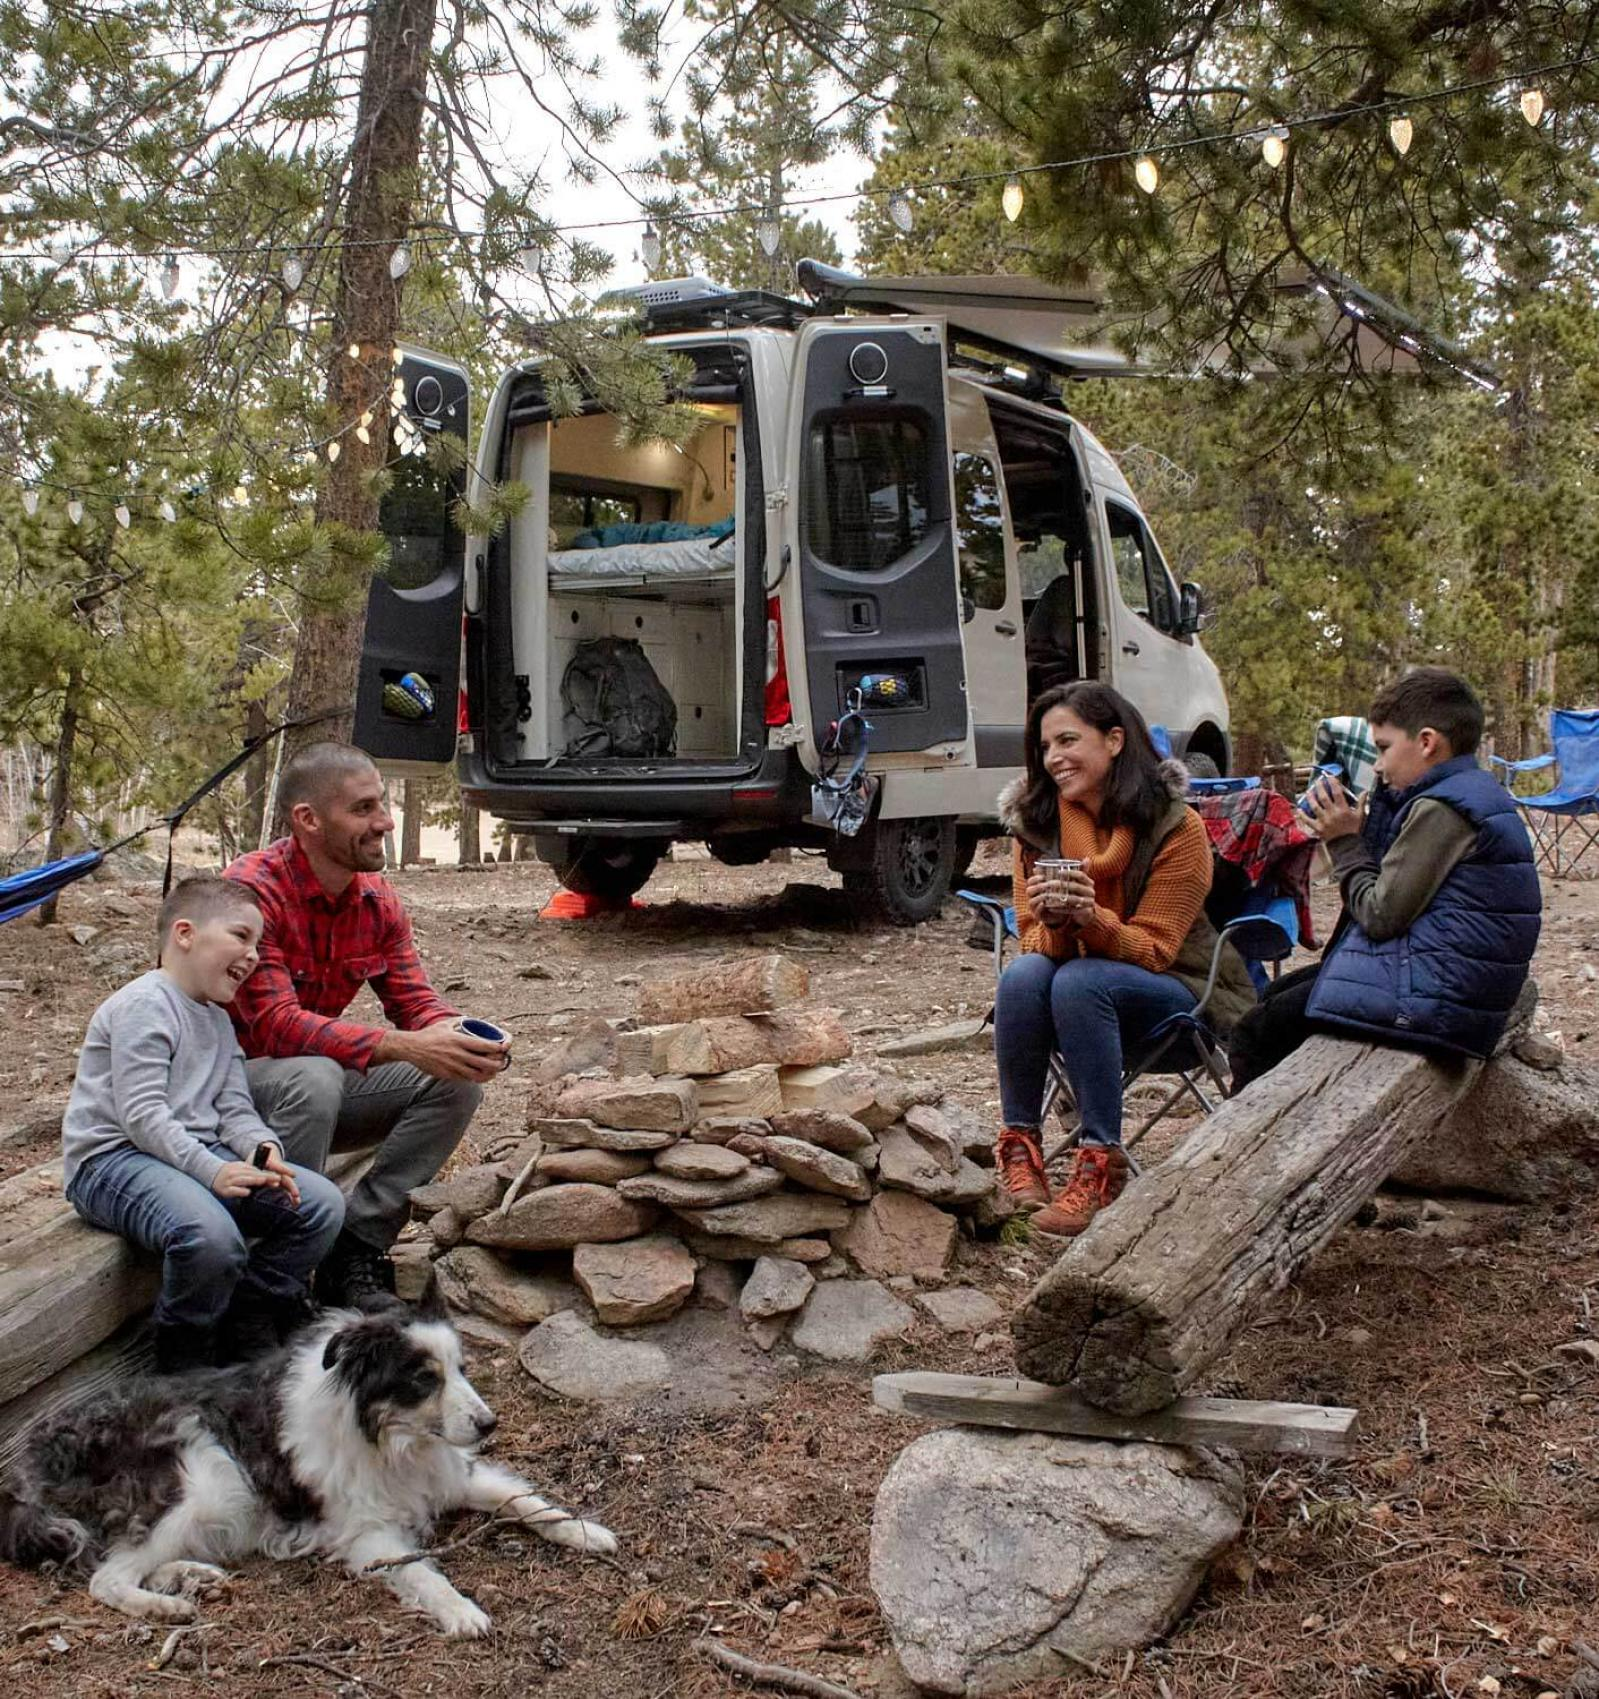 A family sitting outdoors in chairs in front of an Antero Adventure Van